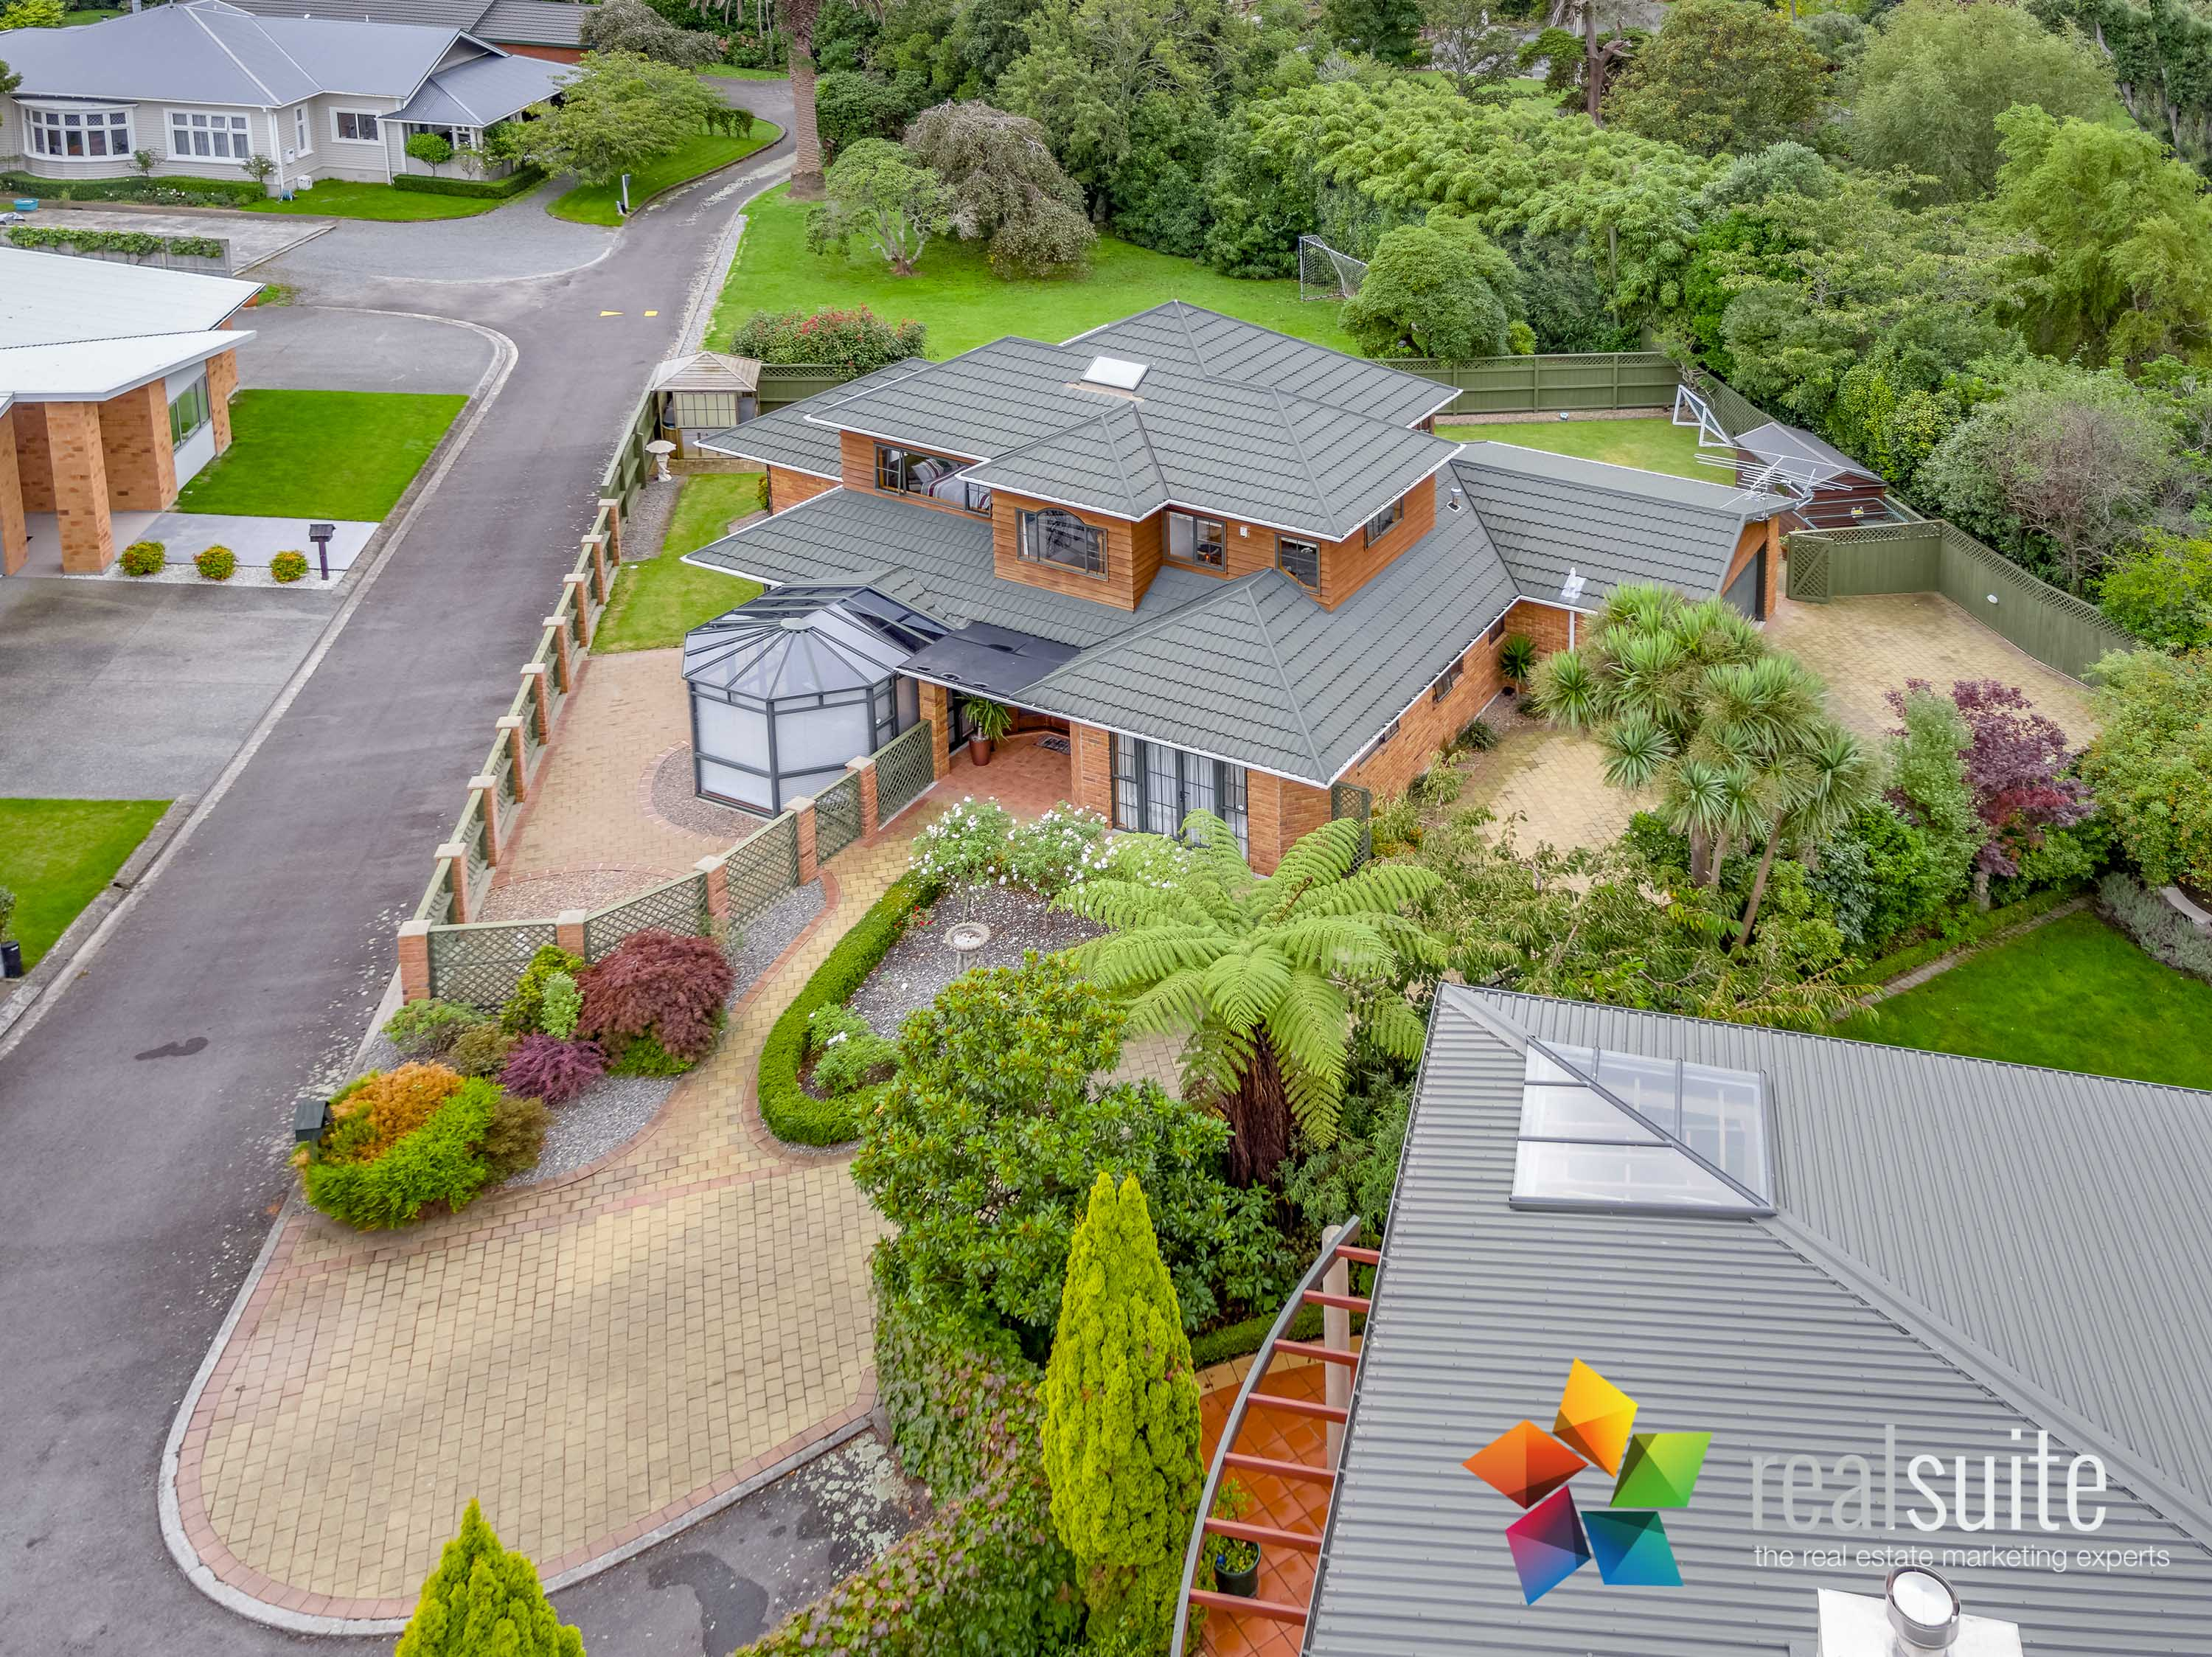 37,39 Rossiter Avenue, Lower Hutt 0072